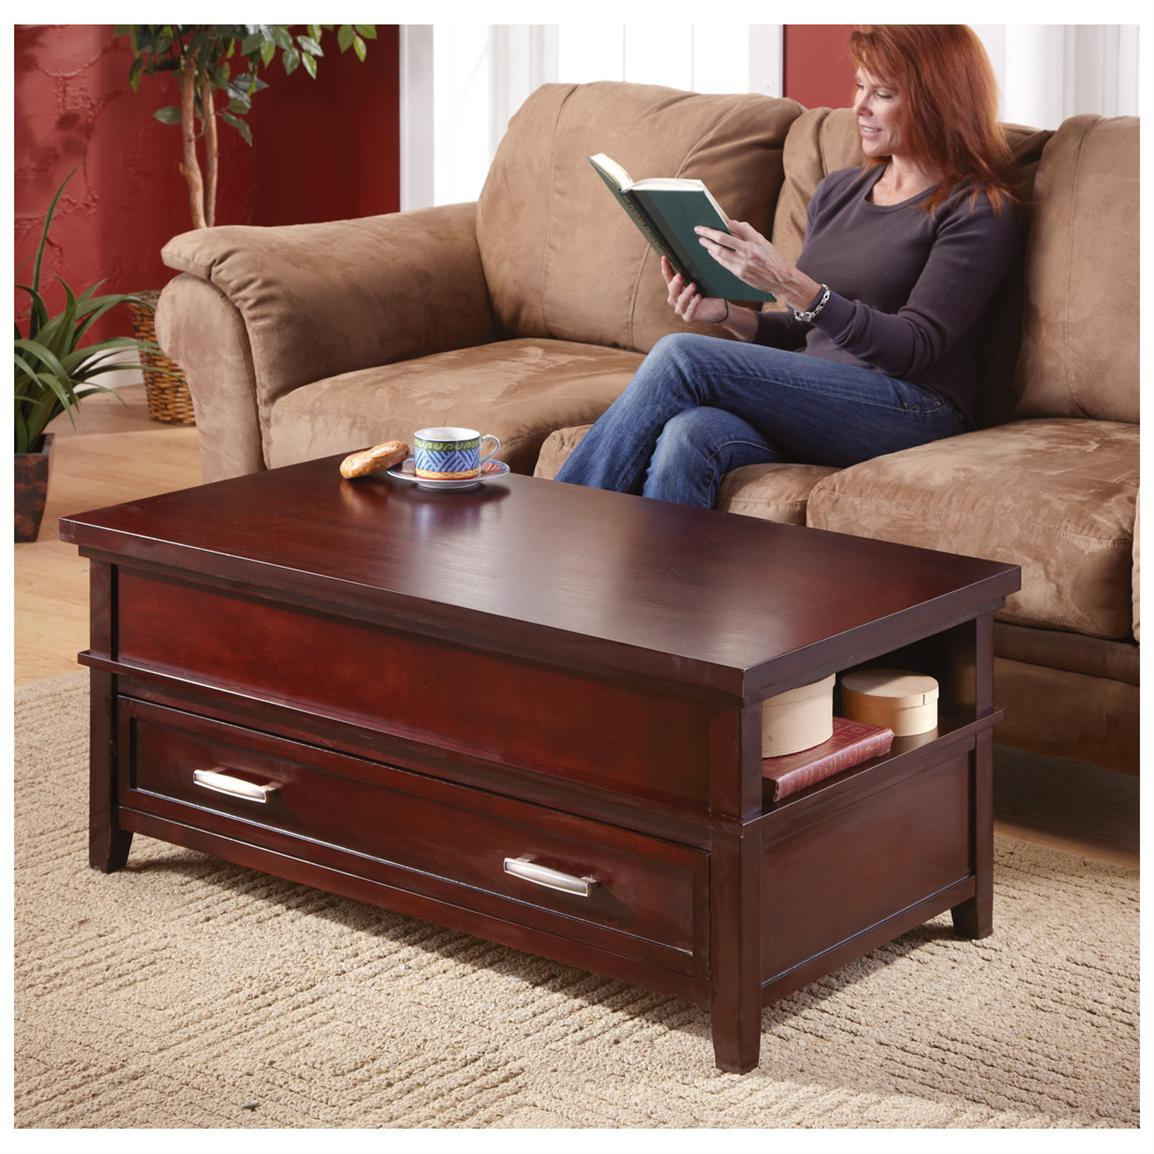 CASTLECREEK™ Lift-top Storage Coffee Table, Espresso Finish - Top lifts up to you